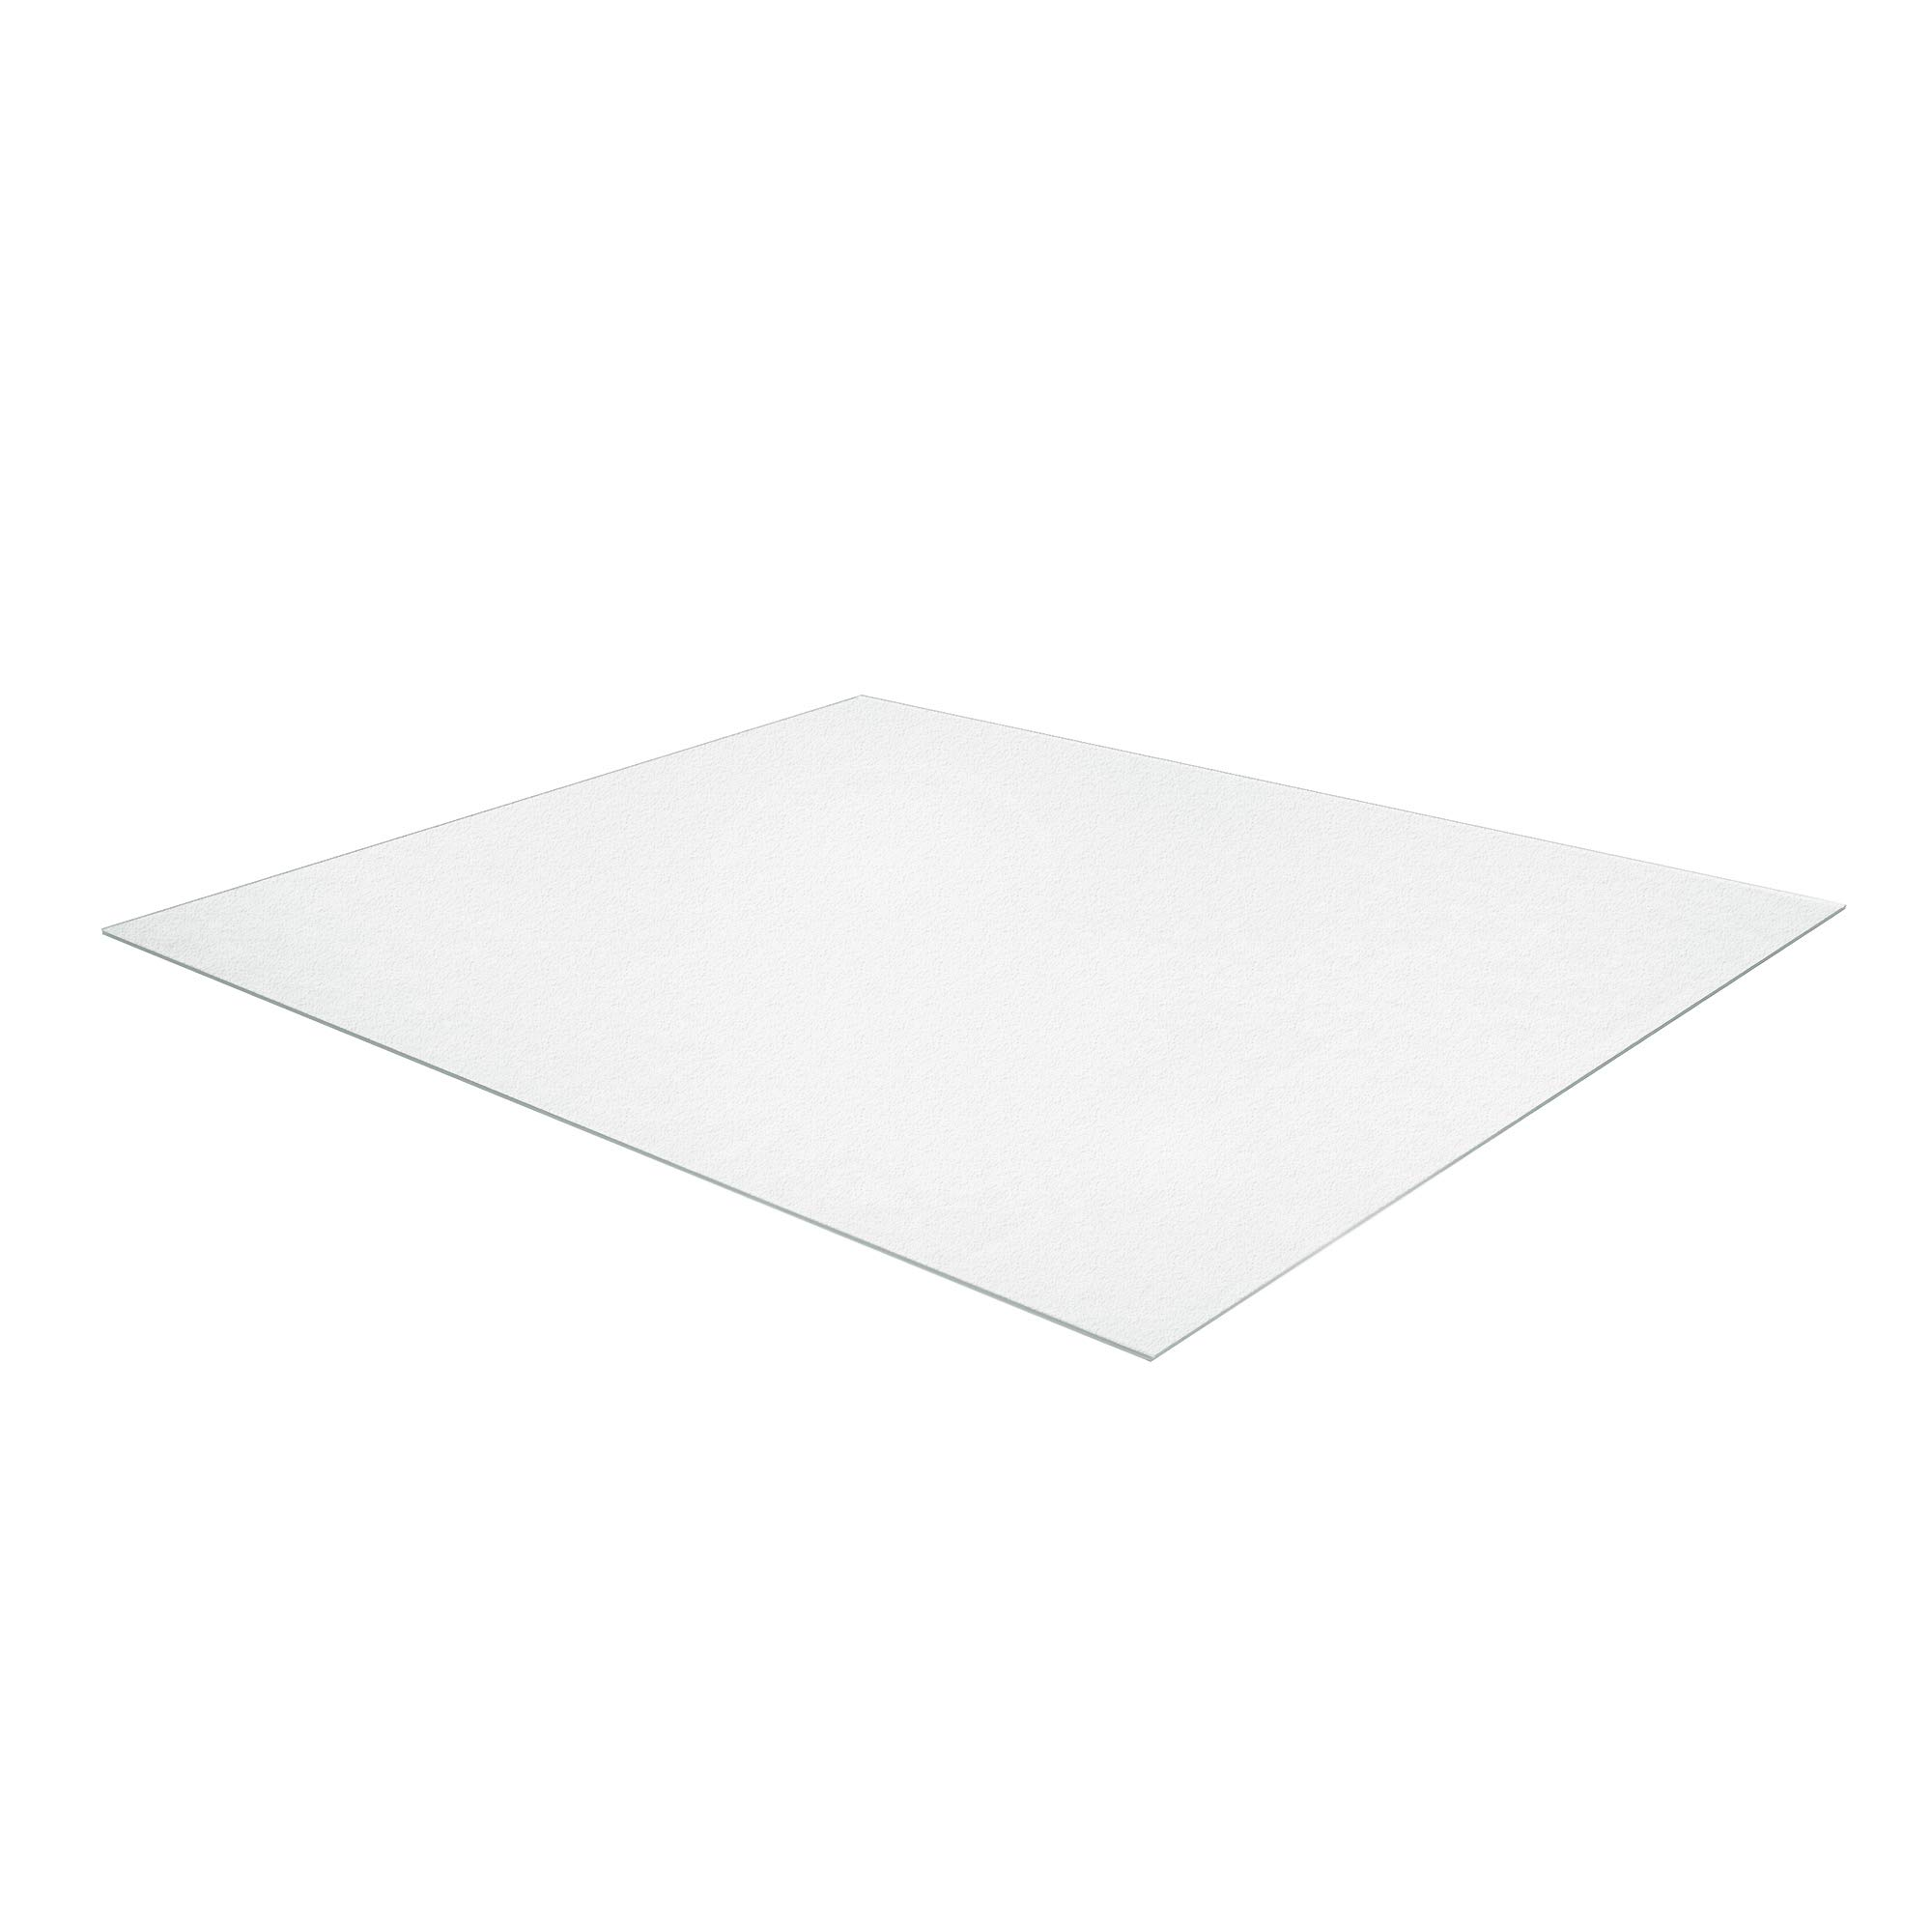 AmazonBasics Polycarbonate Extra Large Chair Mat for Hard Floors - 59'' x 79''